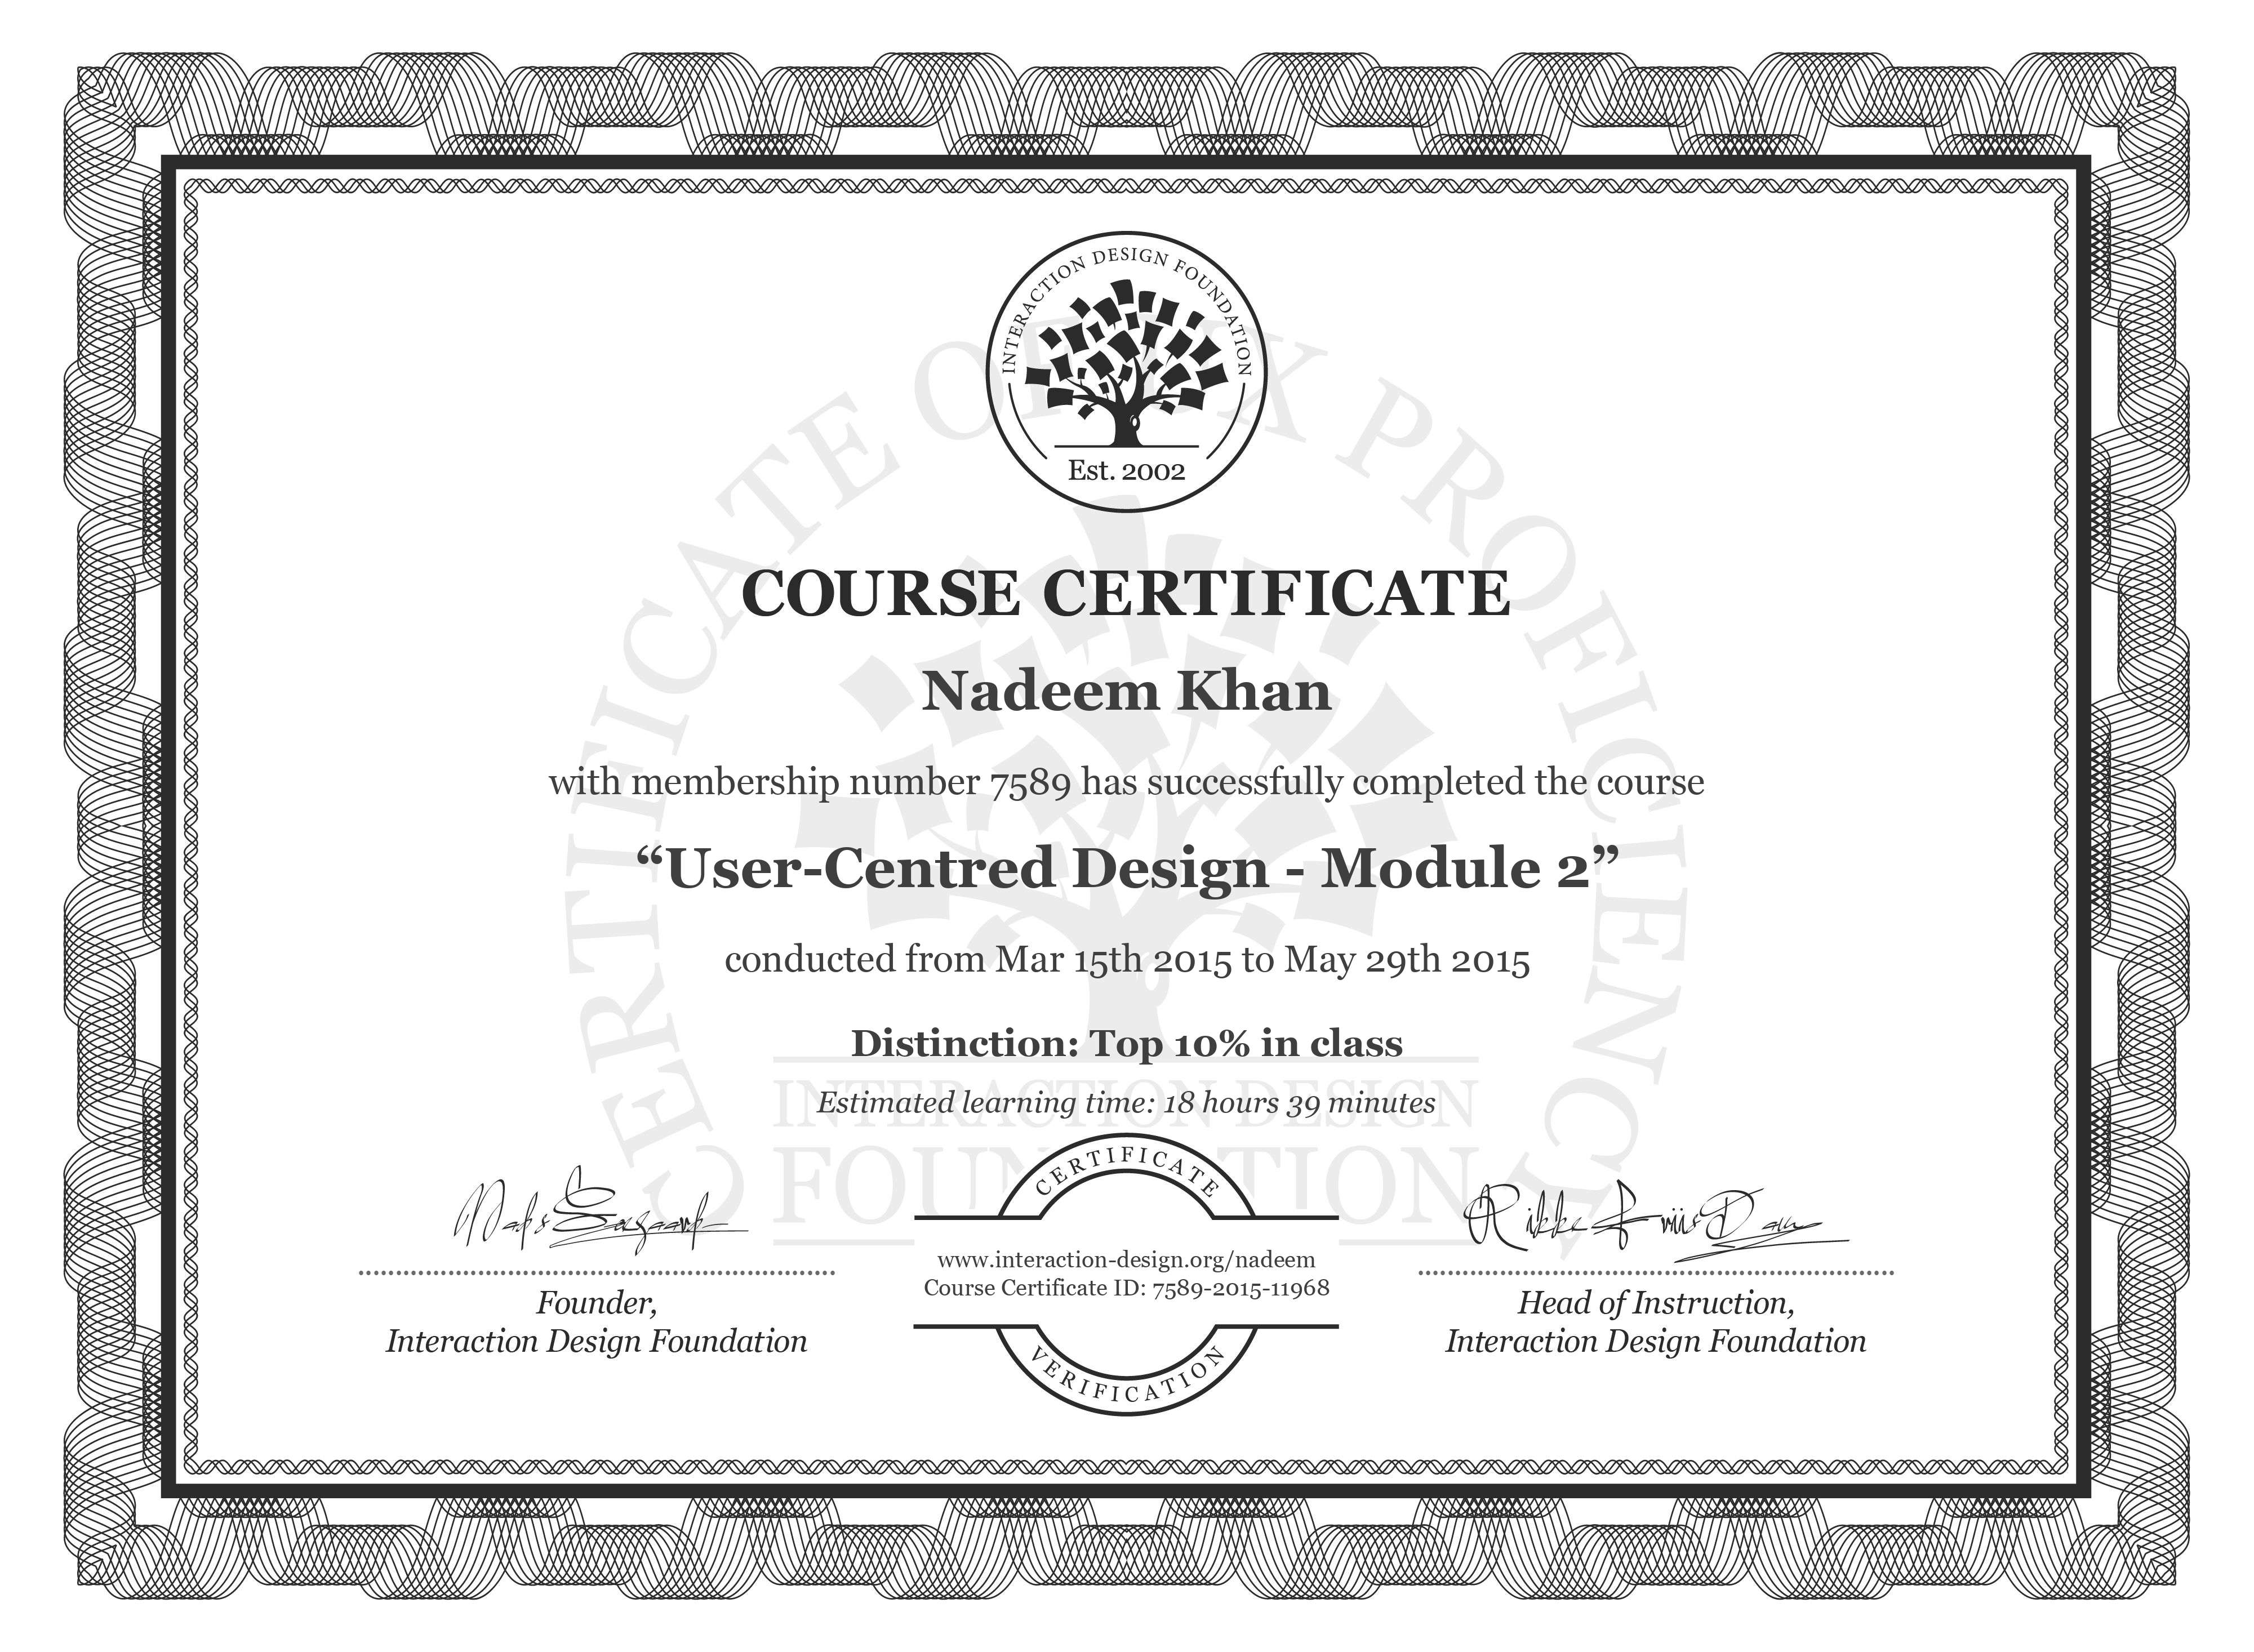 Nadeem Khan: Course Certificate - User-Centred Design - Module 2